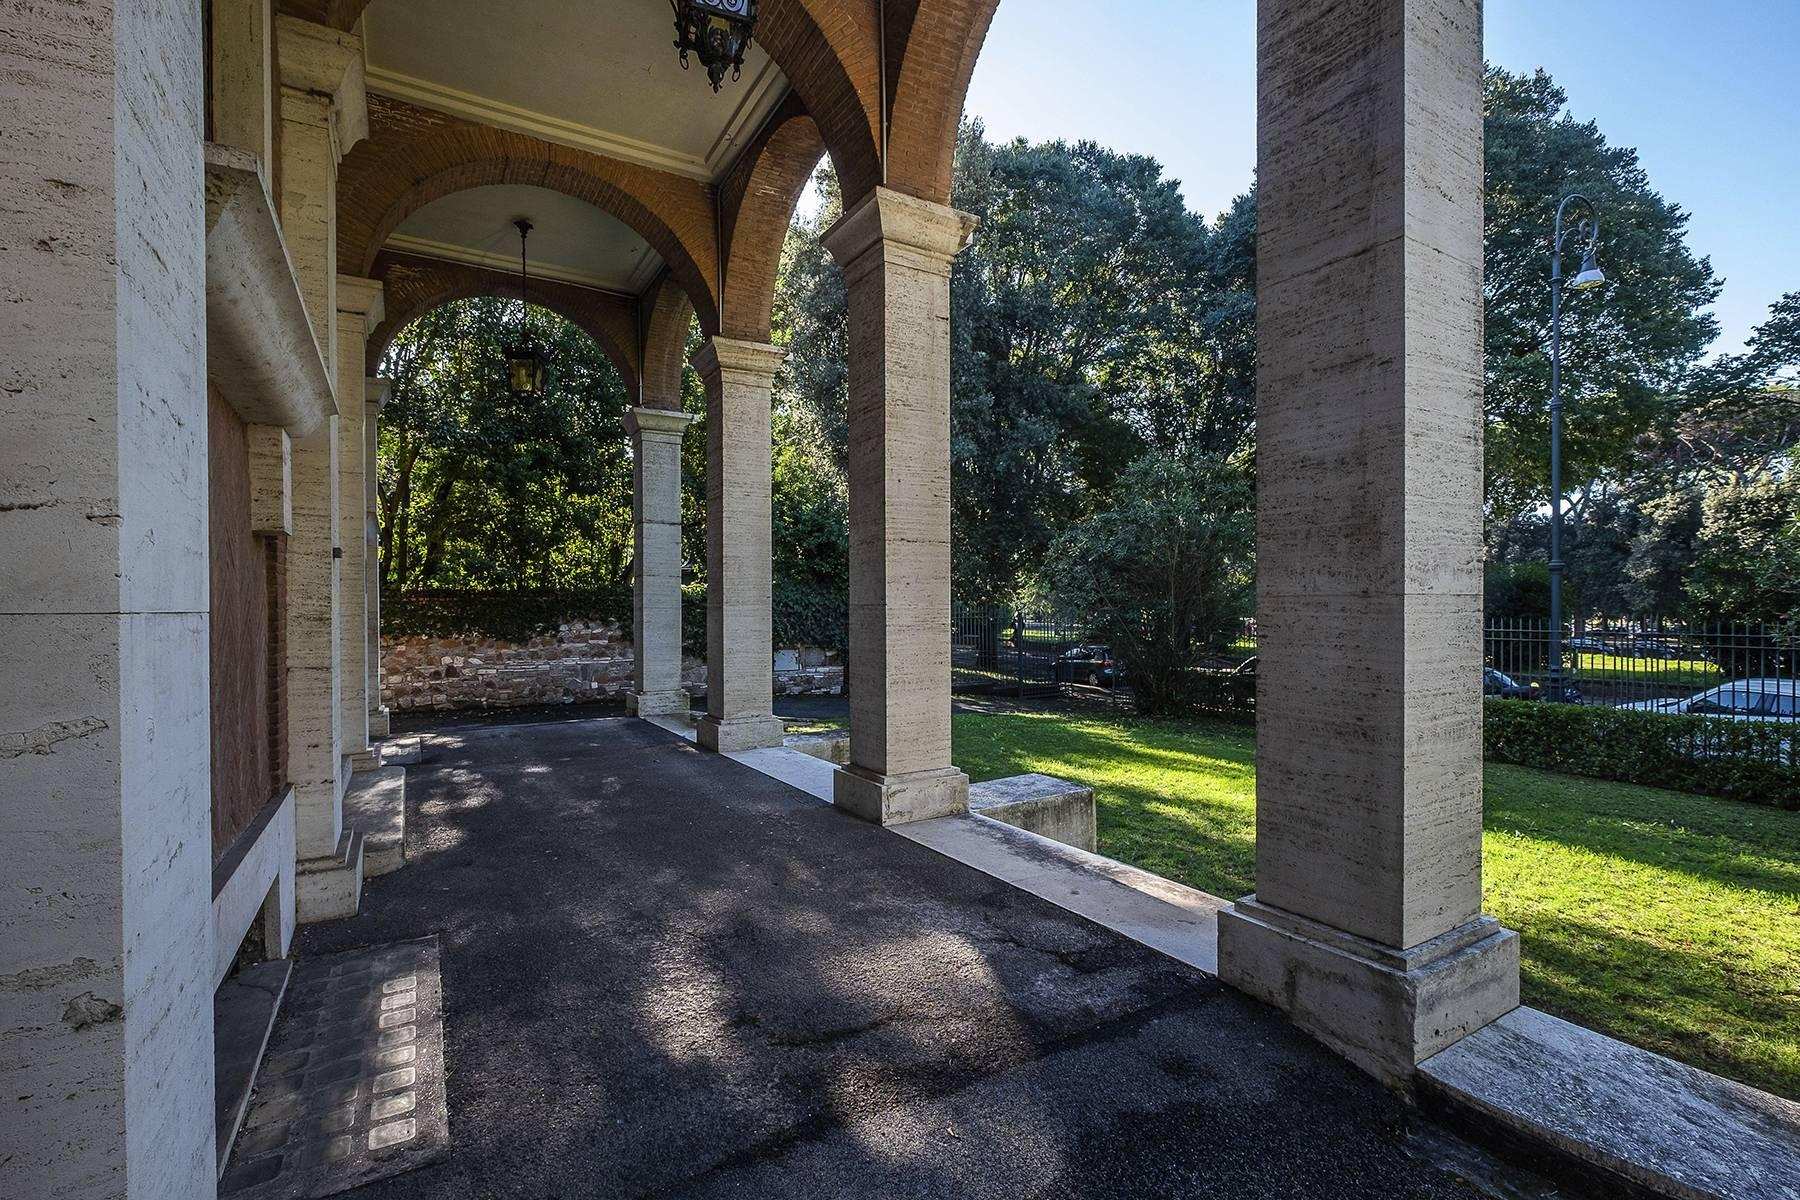 Elegant classical  Villa in the heart of Rome's archaeological ruins - 3